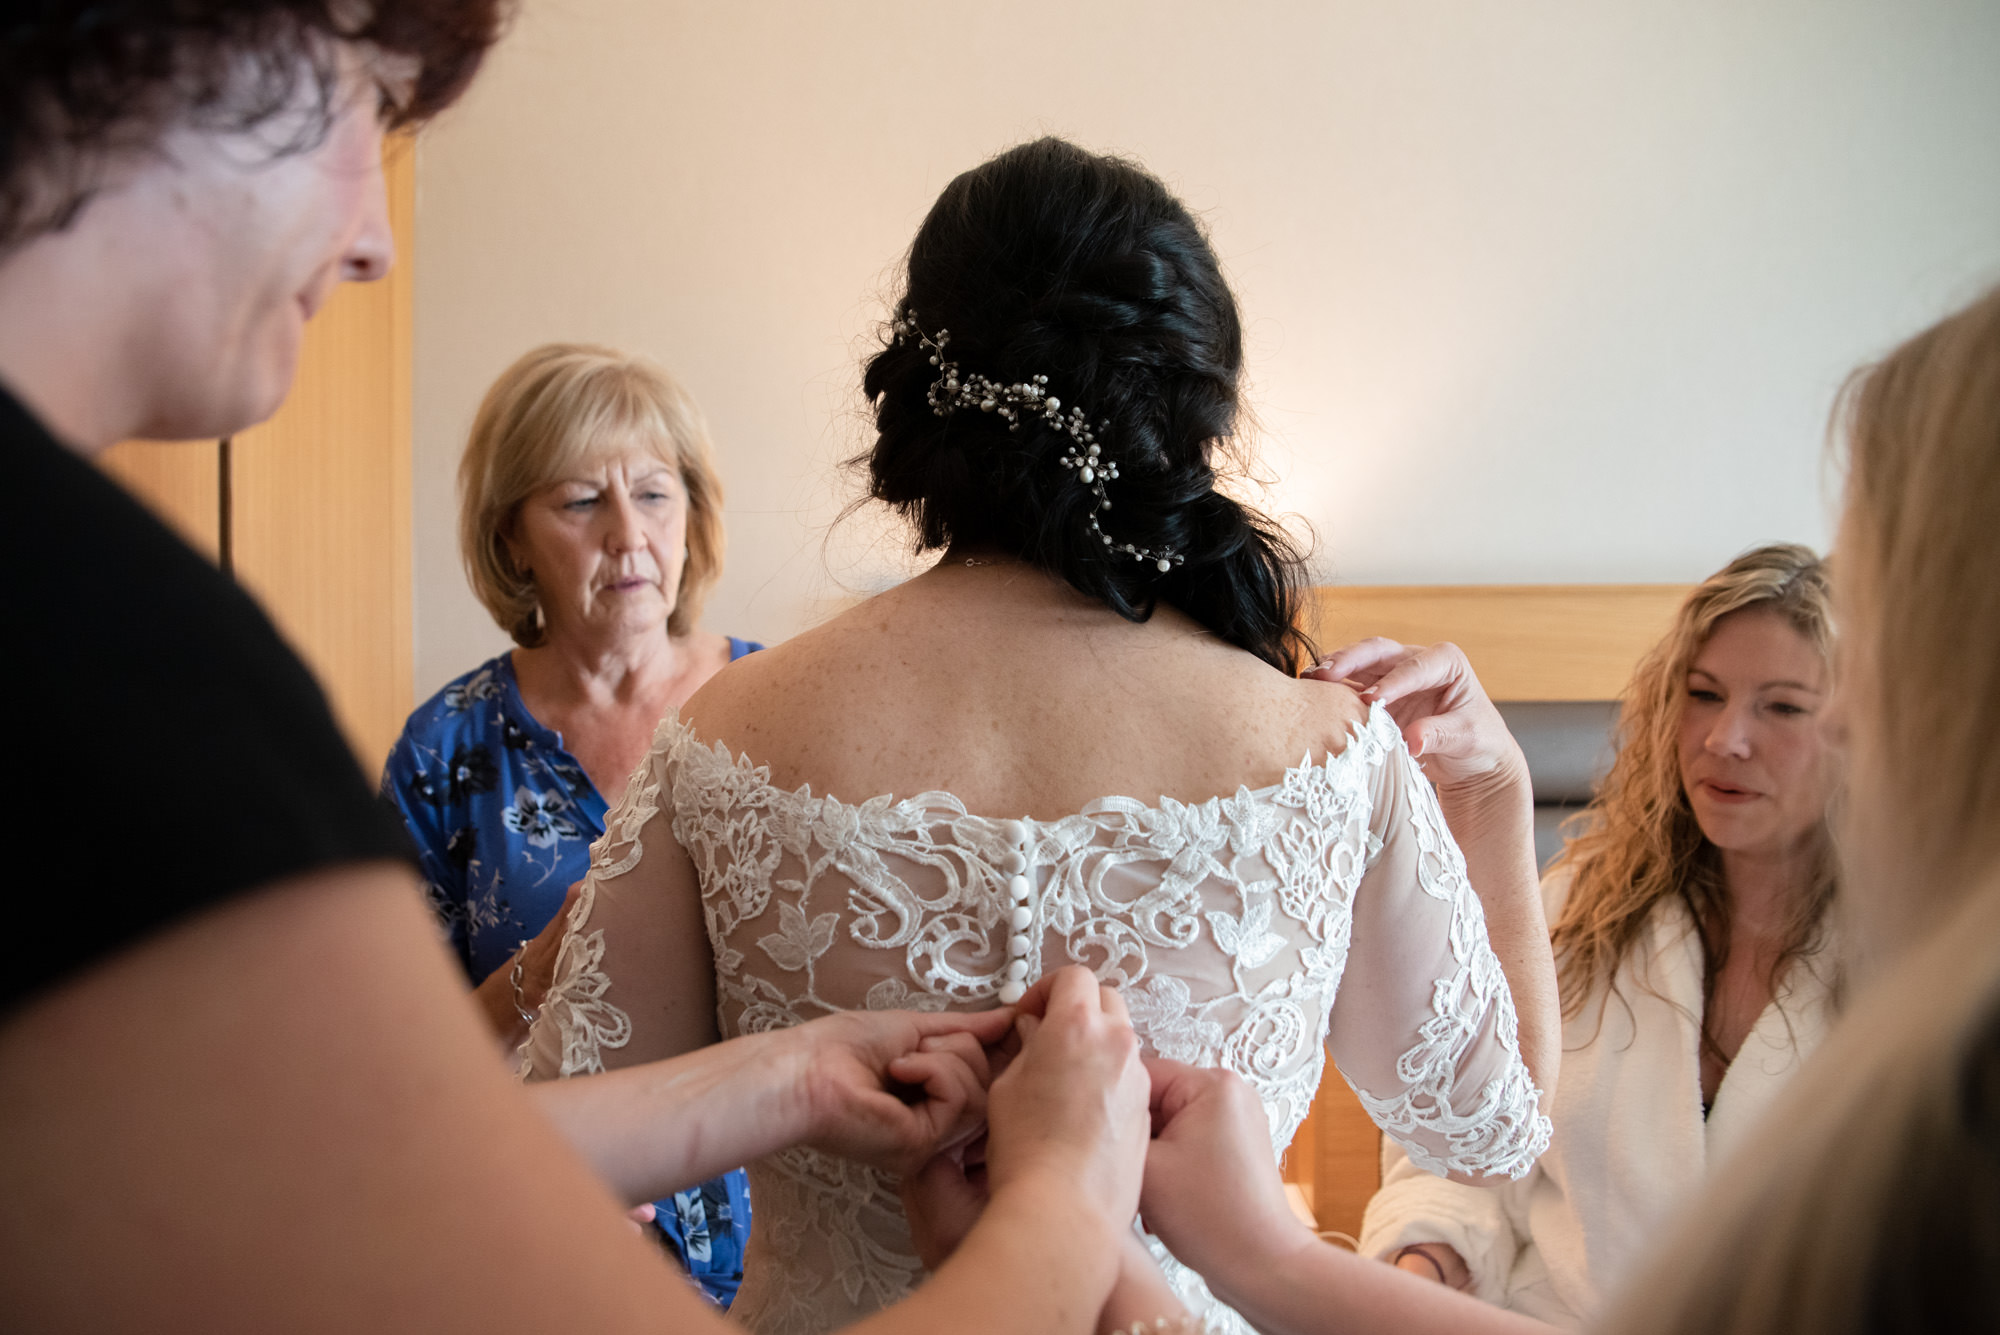 Buttoning up the bride's dress